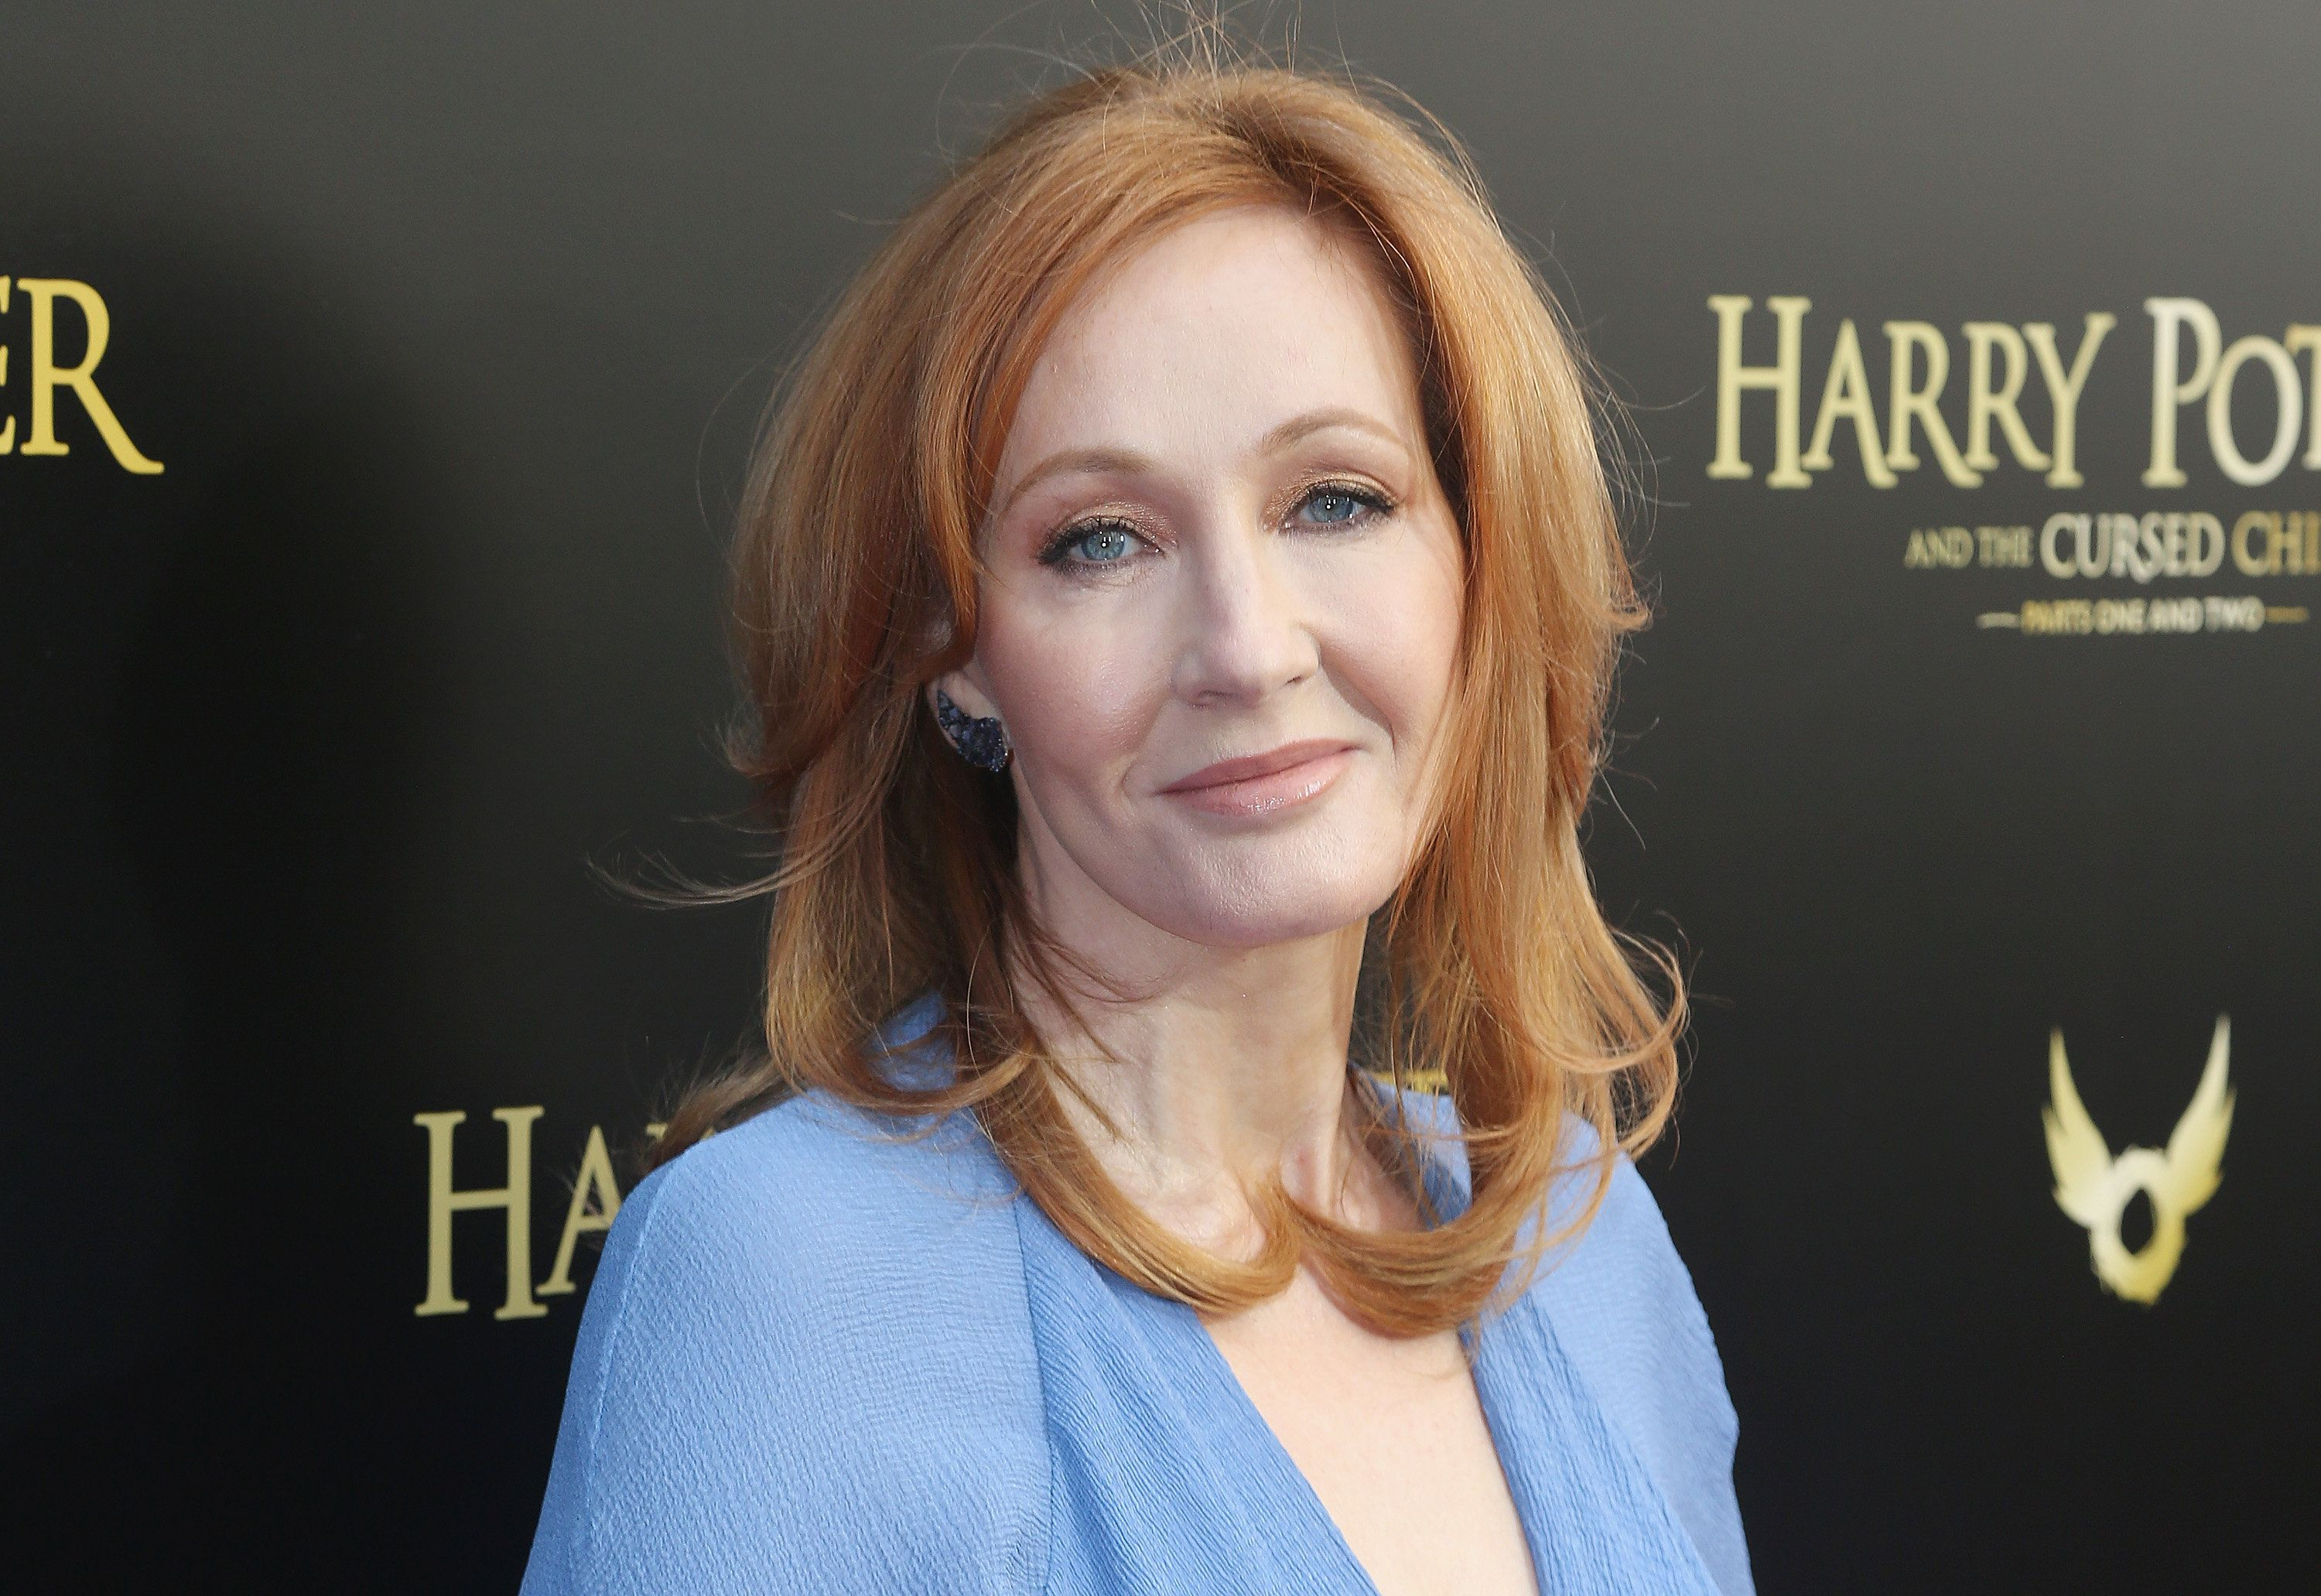 JK Rowling Apologizes for Killing Another 'Harry Potter' Character